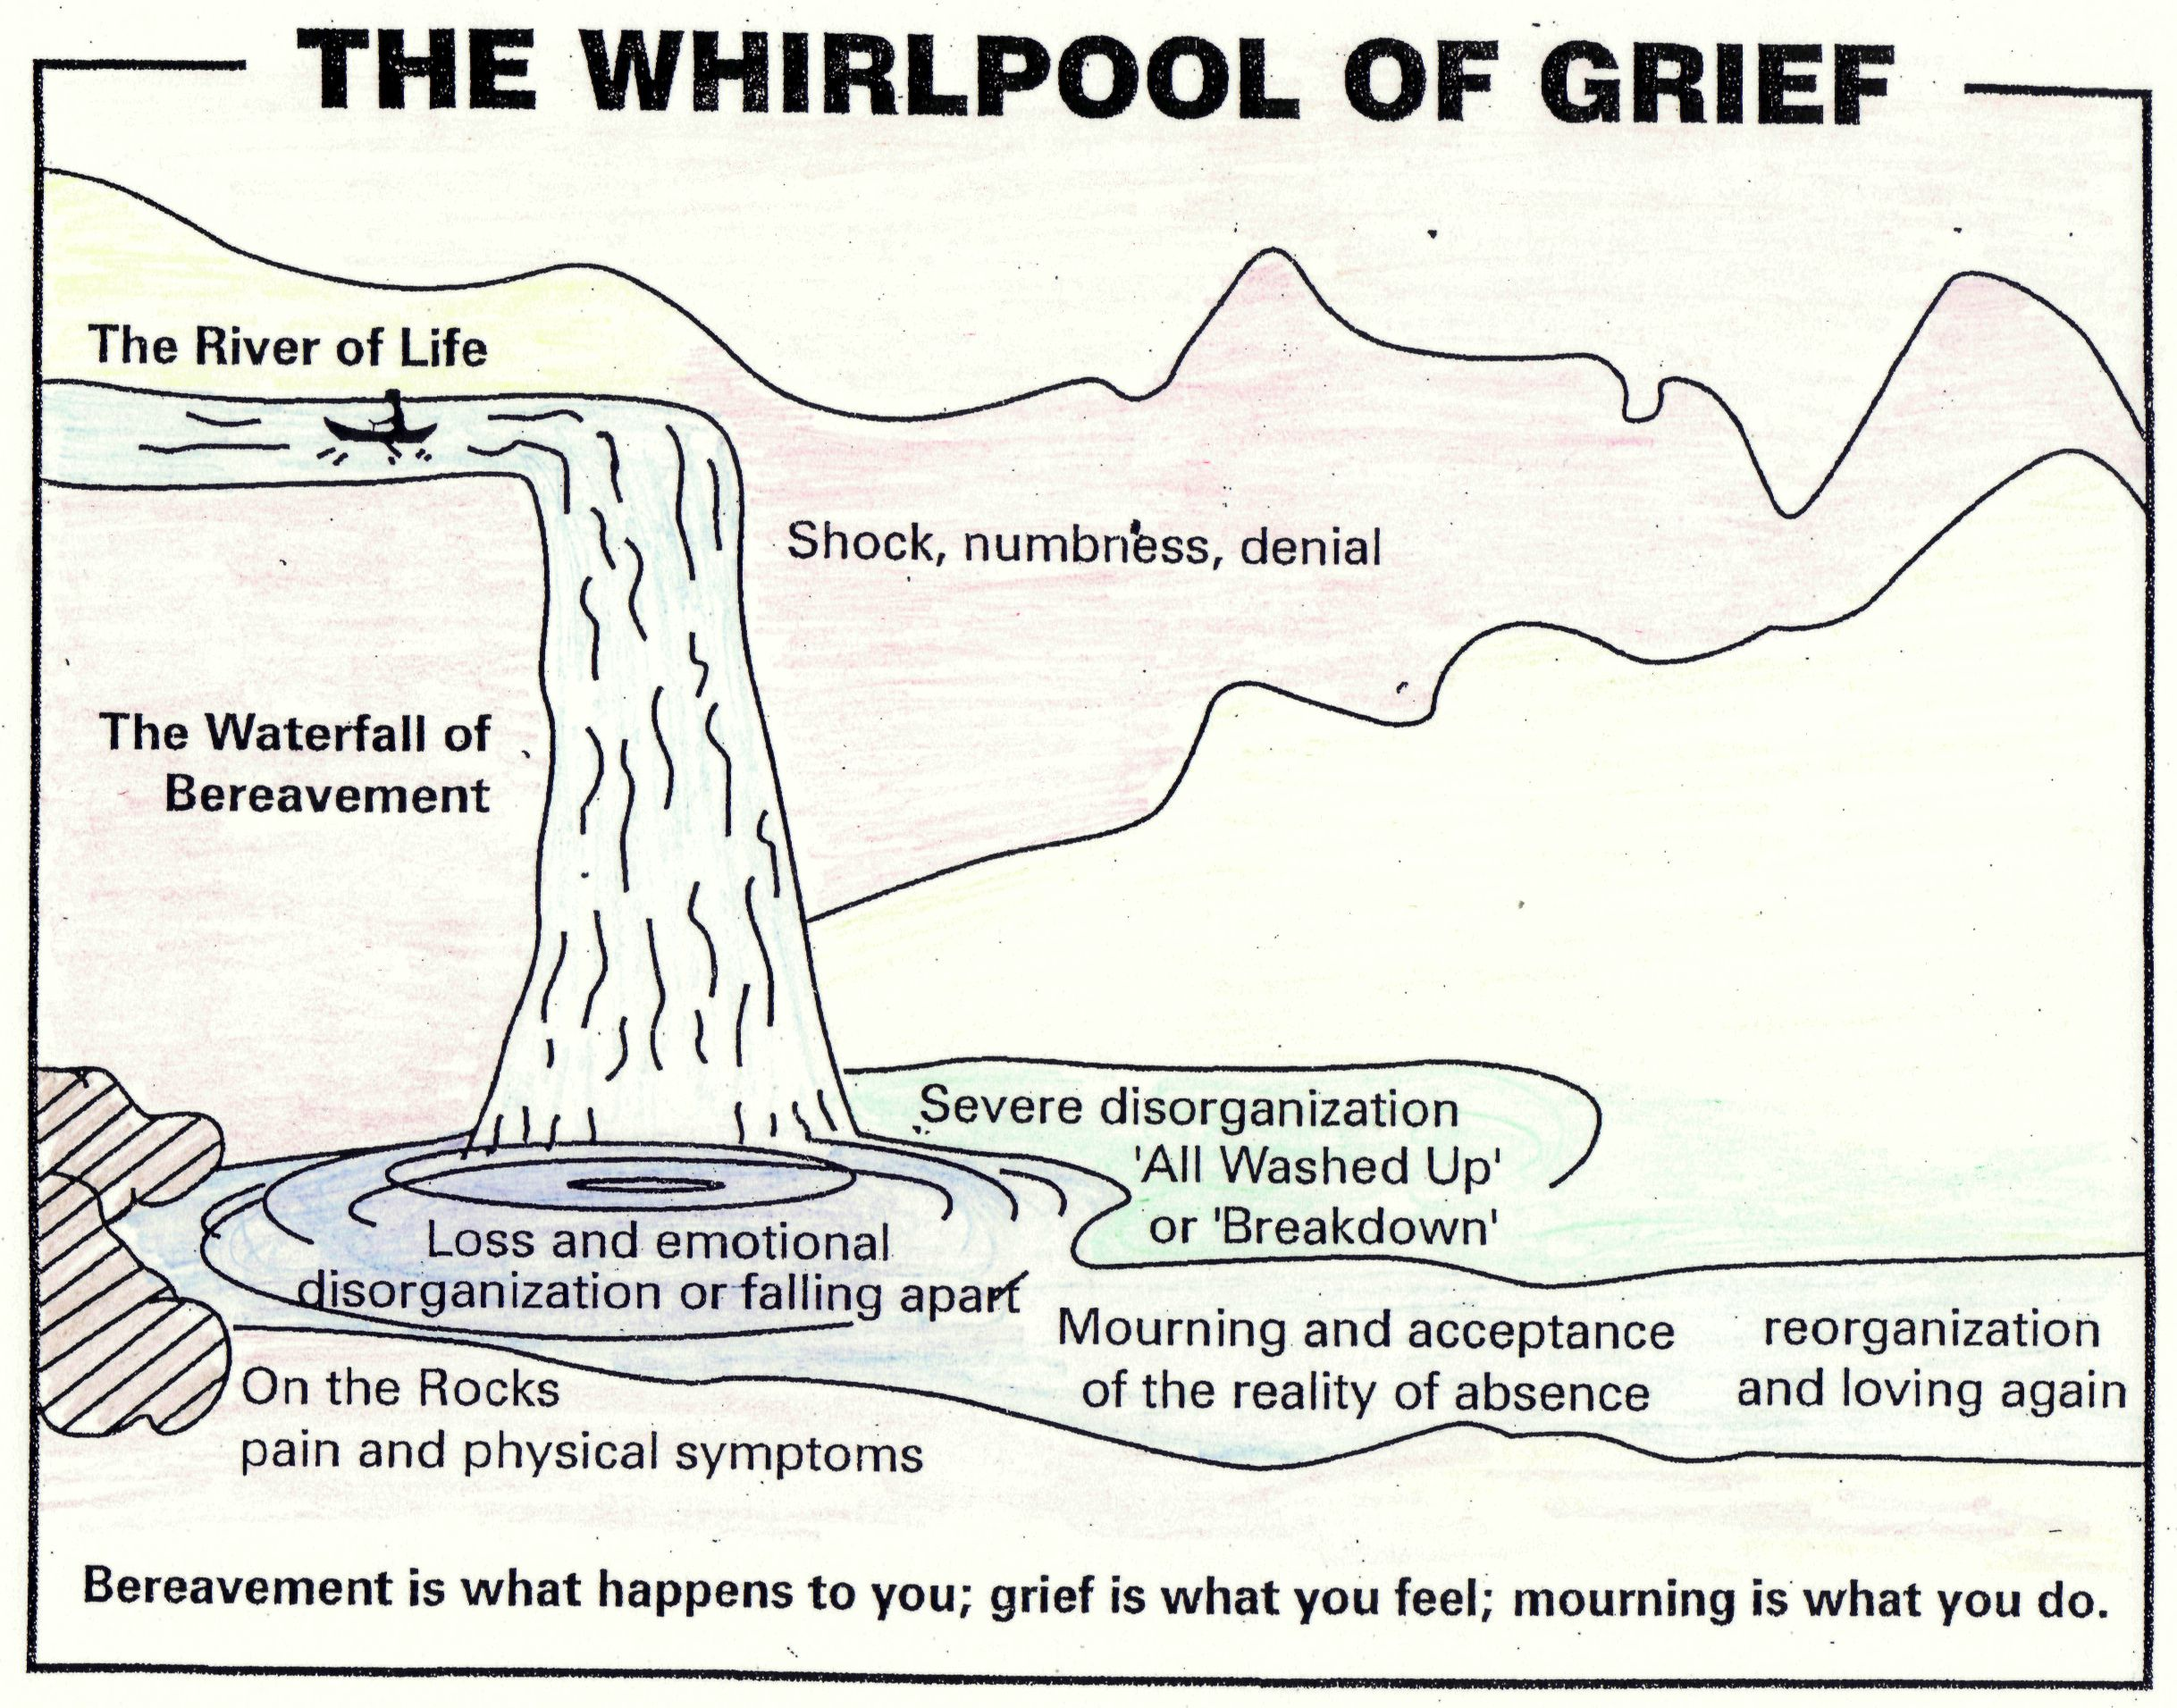 worksheet Grief Therapy Worksheets 78 best images about griefloss on pinterest healing heart counseling and student centered resources